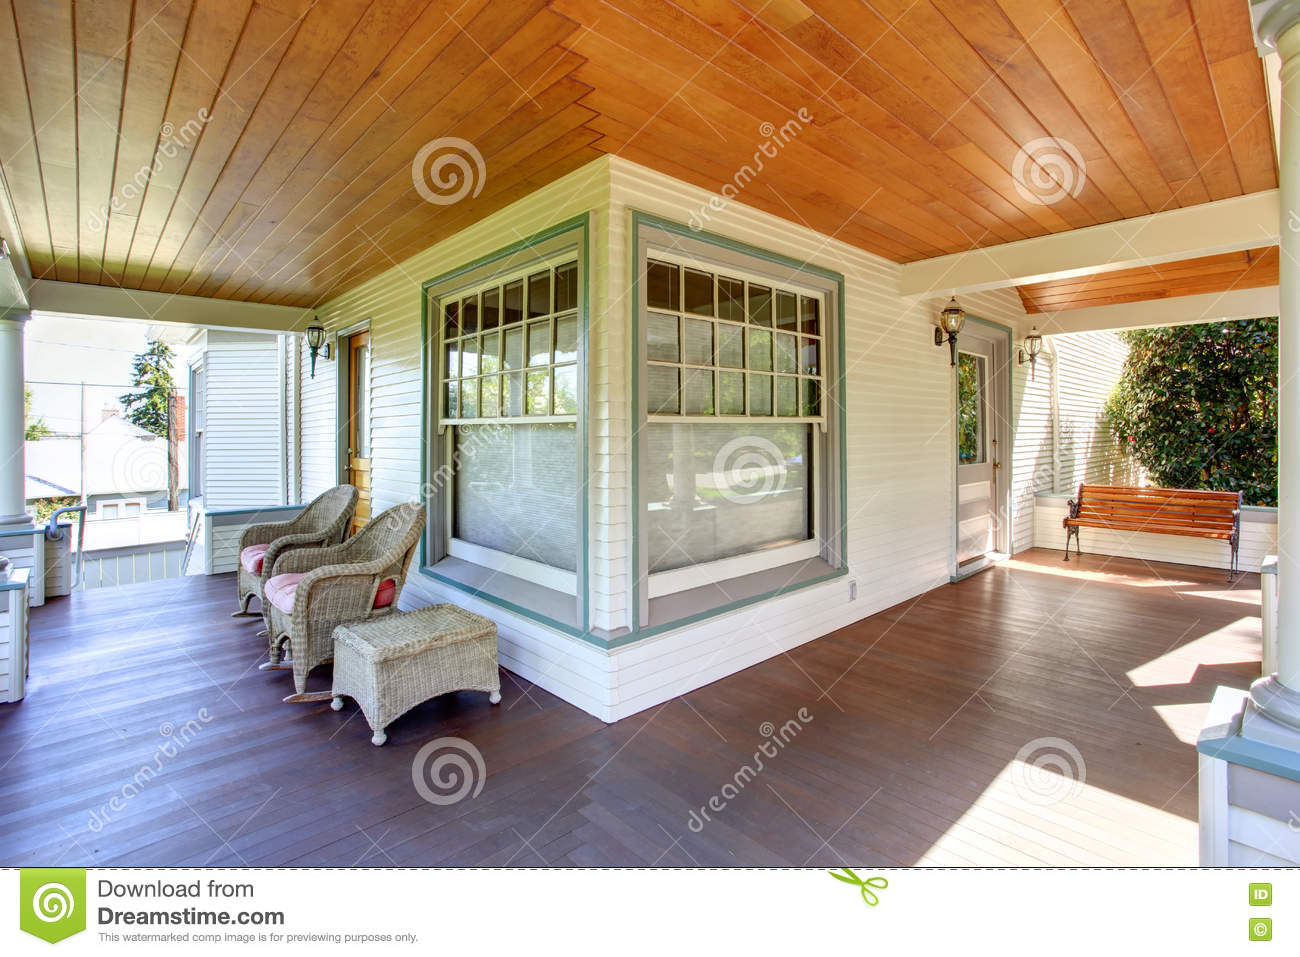 Covered front porch craftsman style home royalty free stock image - Royalty Free Stock Photo Front Porch With Chairs And Columns Of Craftsman Home Stock Photo